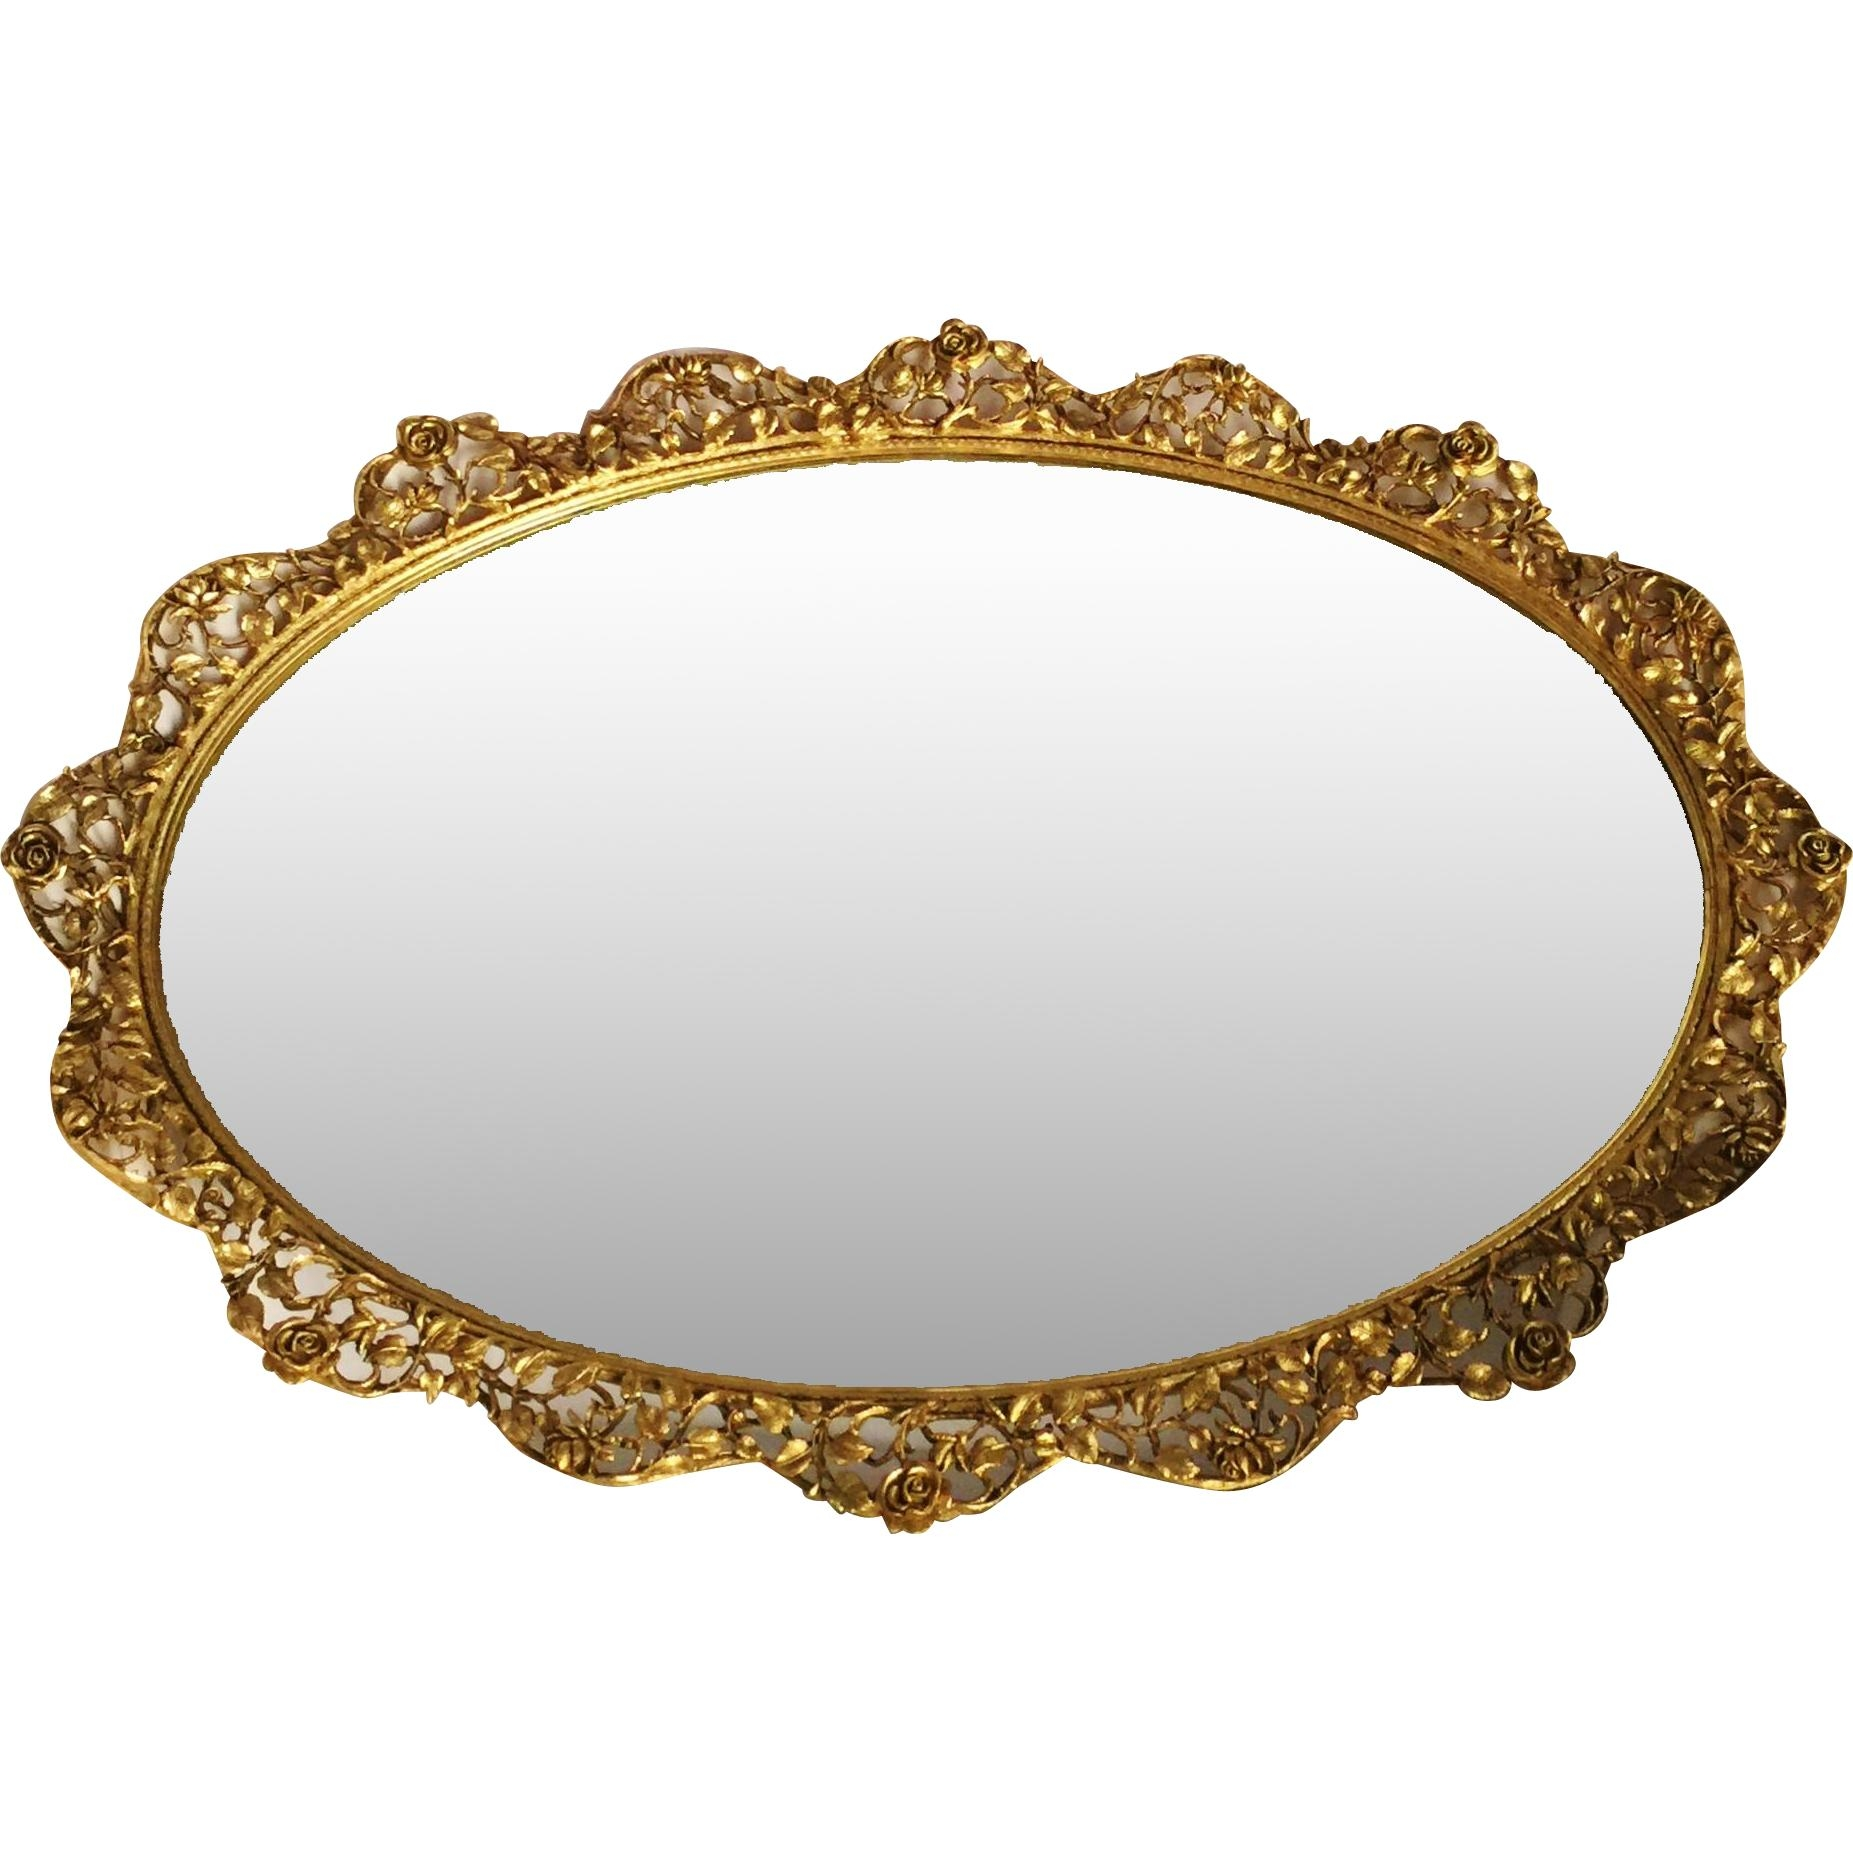 Matson Oval Mirror Tray, Lg (Image 15 of 20)